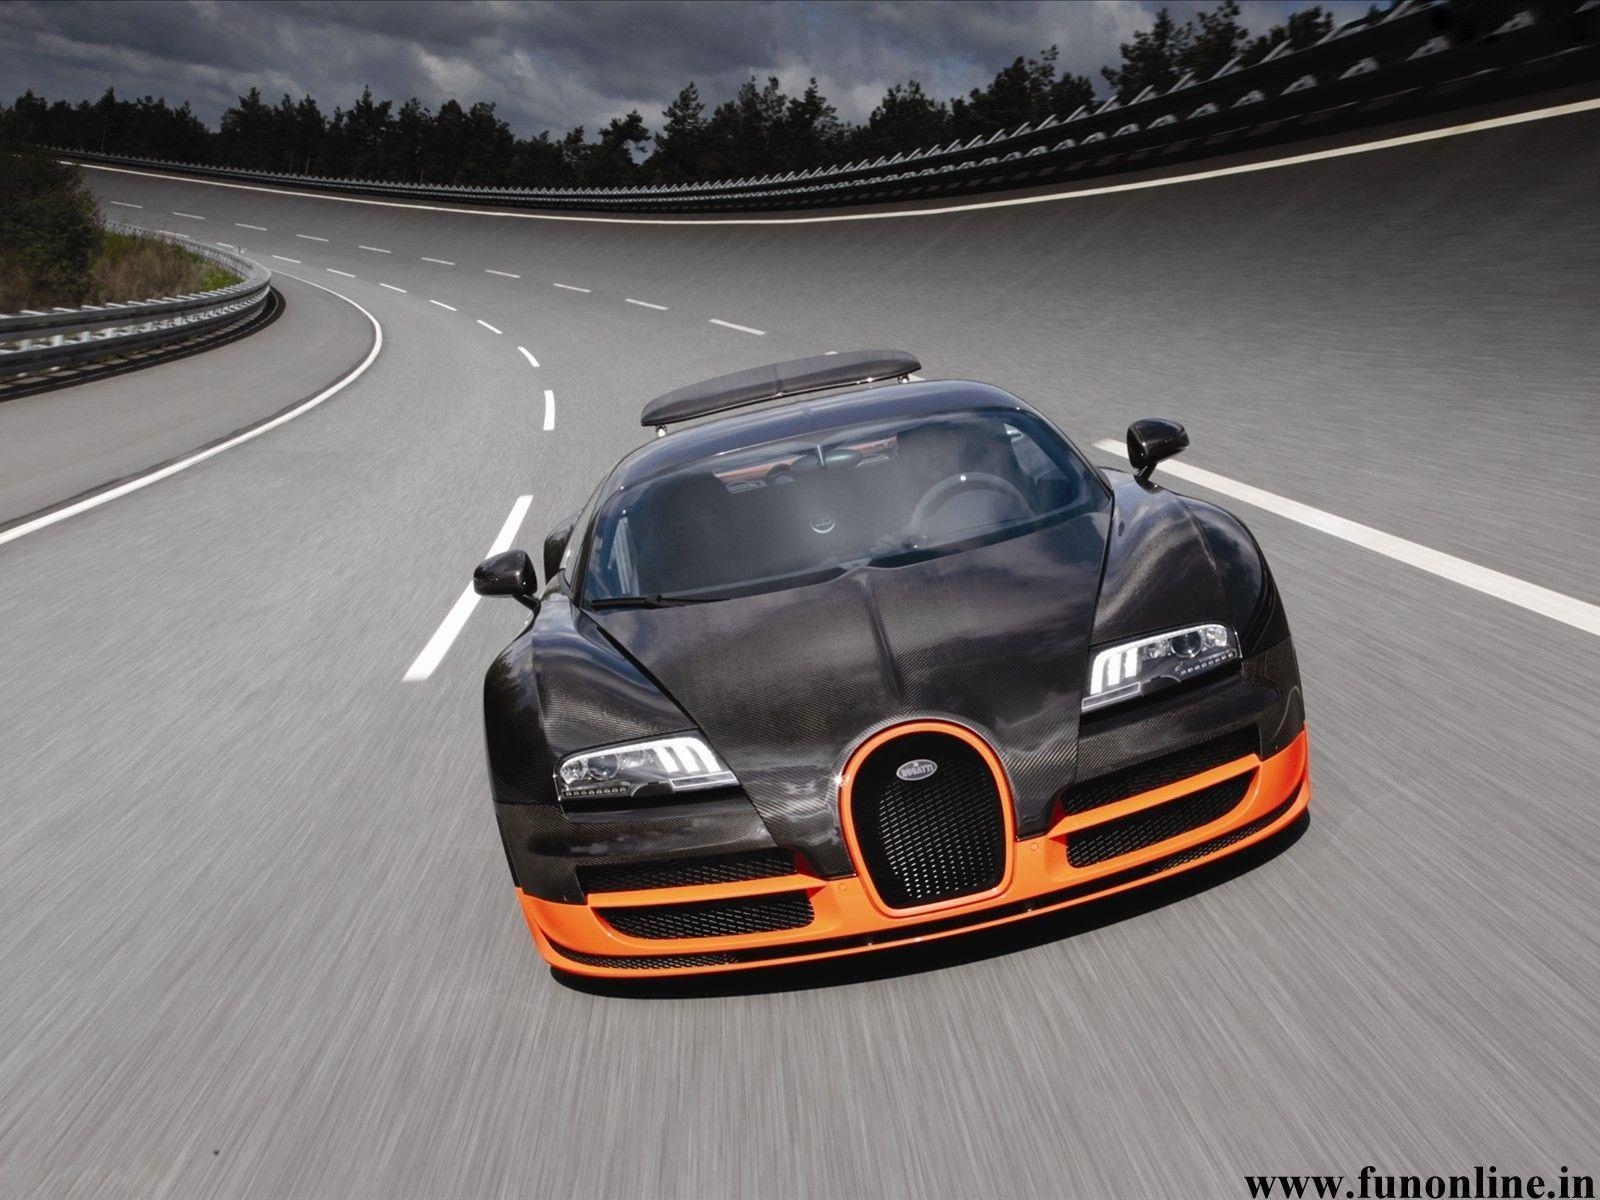 Wallpaper Bugatti Veyron Super Sport: Bugatti Veyron HD Wallpapers